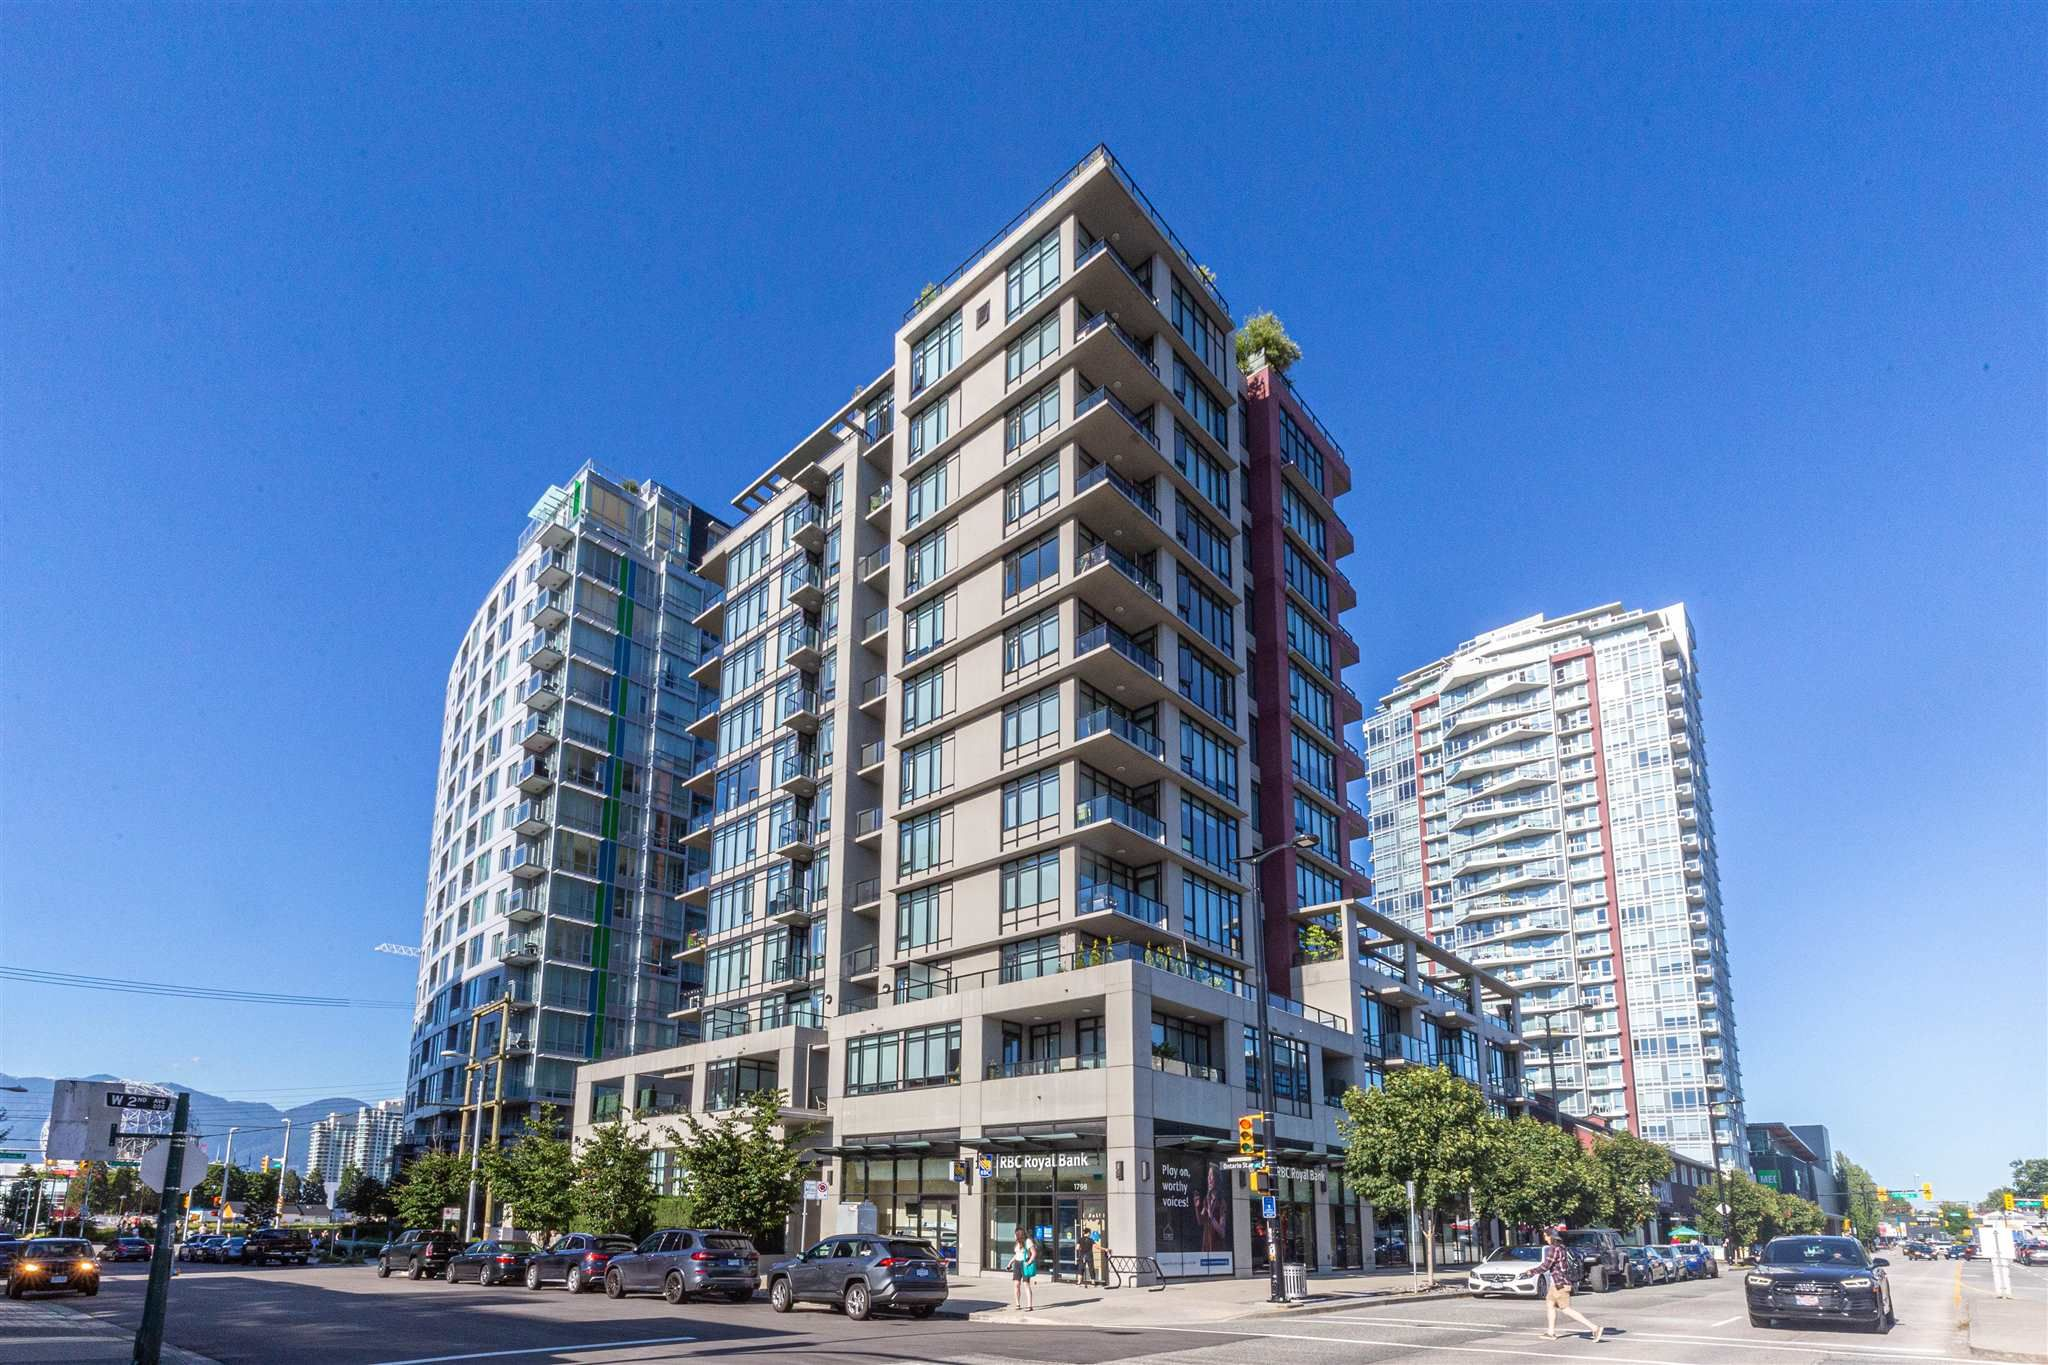 """Main Photo: 801 1788 ONTARIO Street in Vancouver: Mount Pleasant VE Condo for sale in """"PROXIMITY"""" (Vancouver East)  : MLS®# R2605195"""